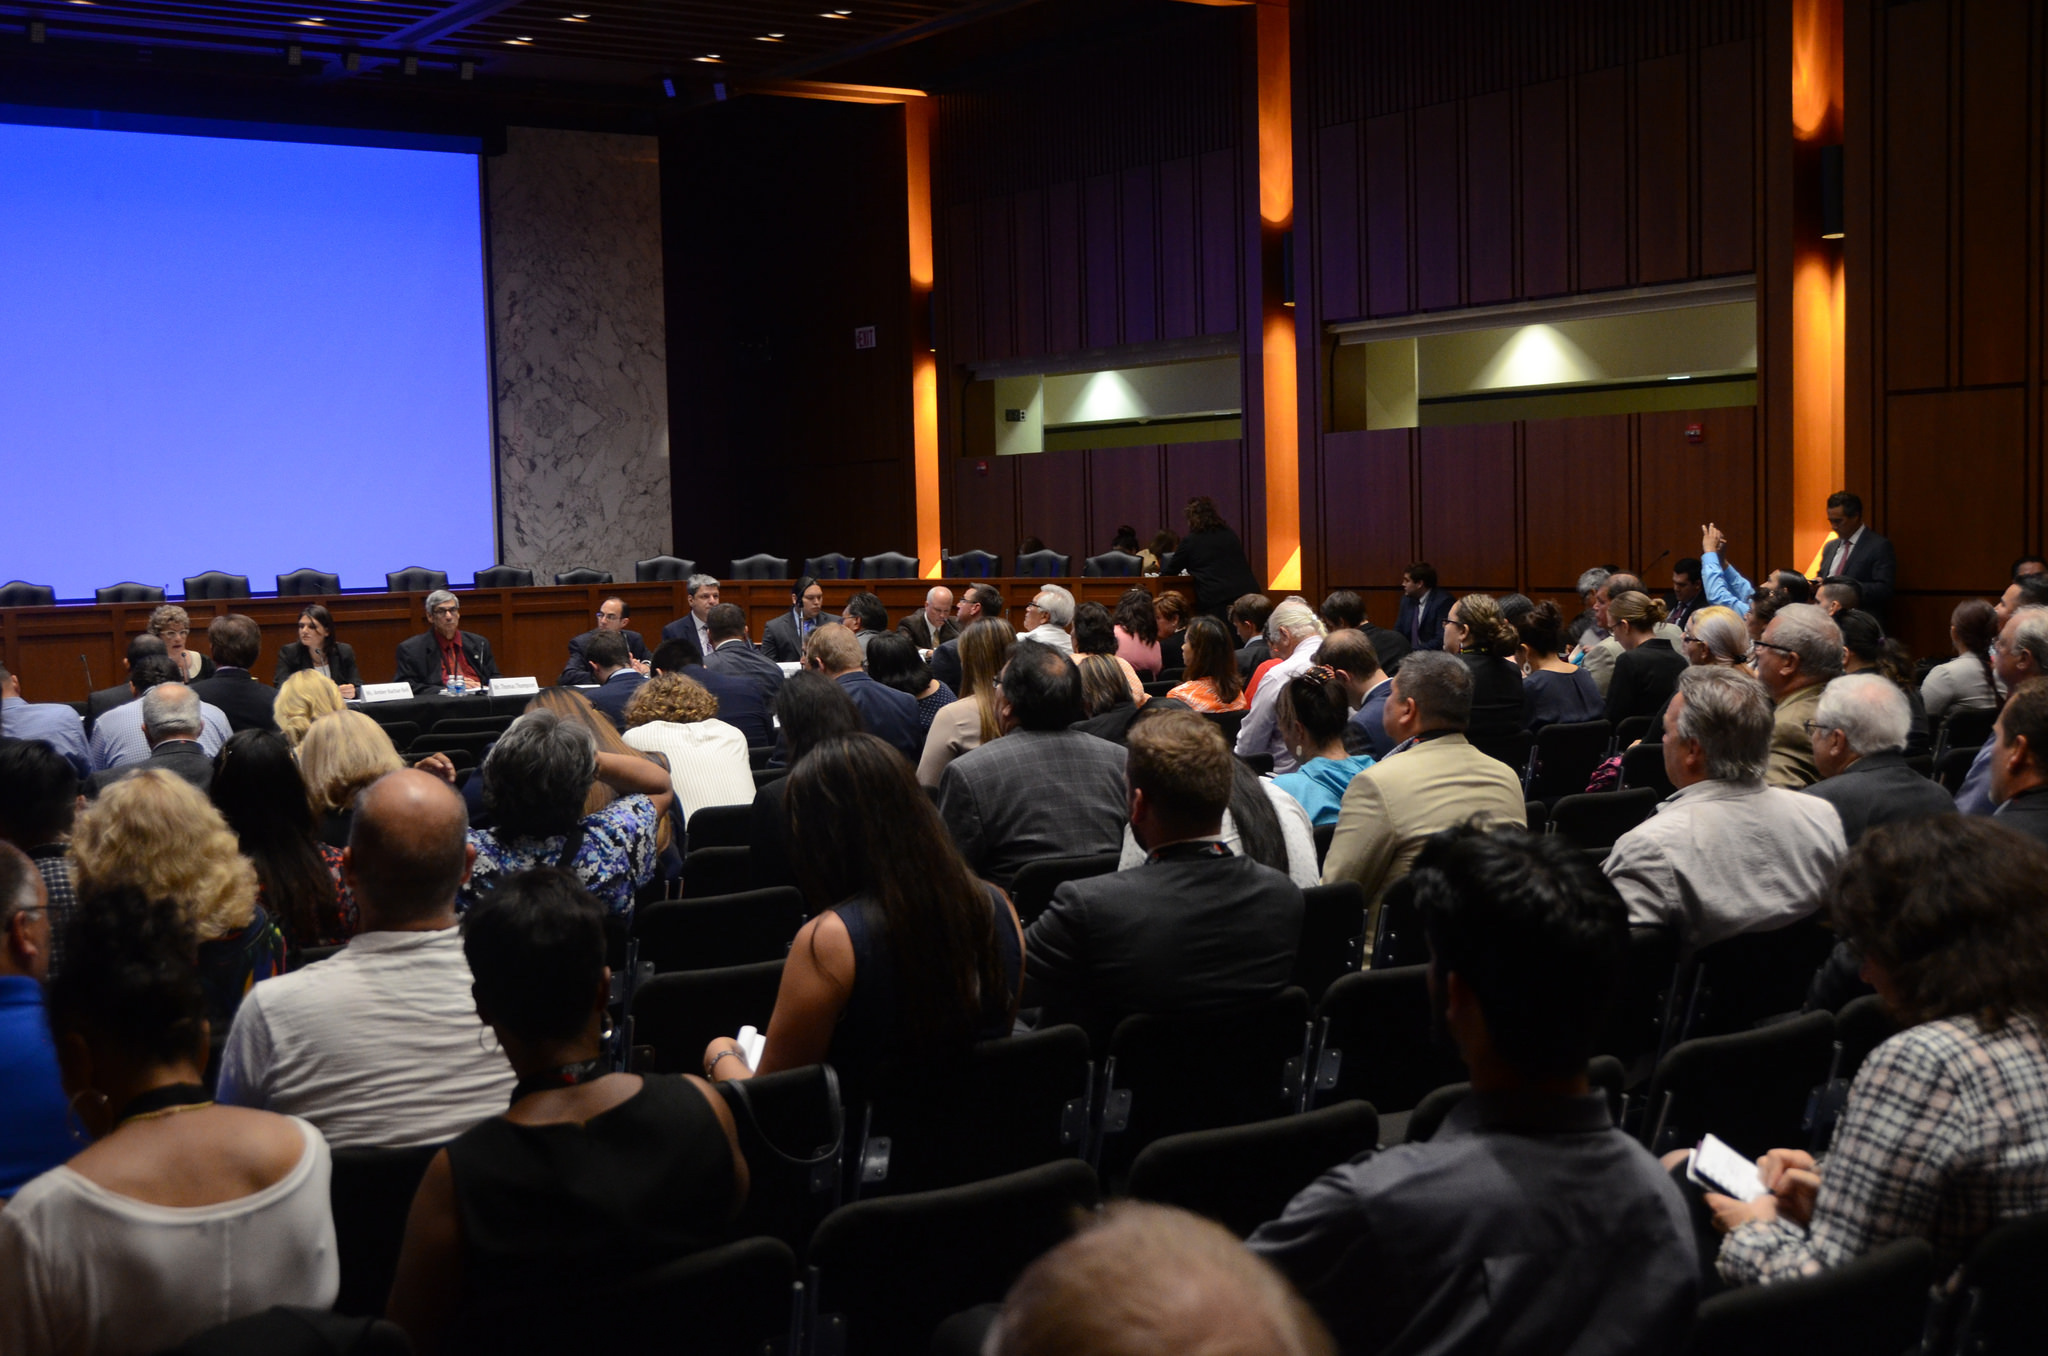 Senate committee focuses on access to capital in Indian Country